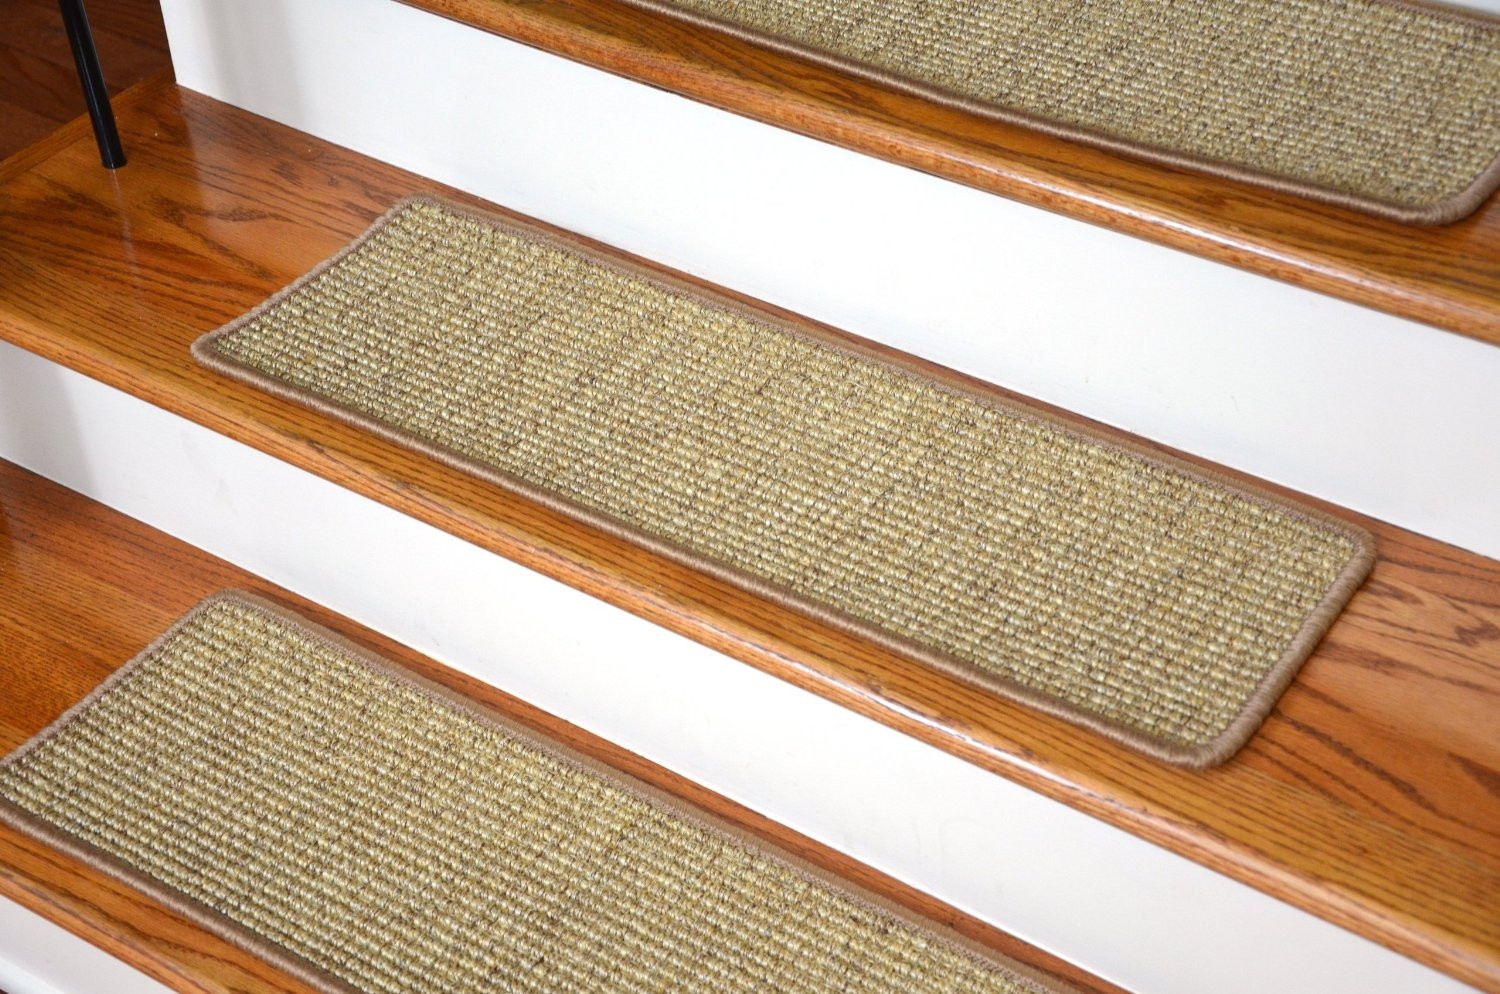 Best ideas about DIY Stair Treads . Save or Pin 20 Collection of Diy Stair Tread Rugs Now.